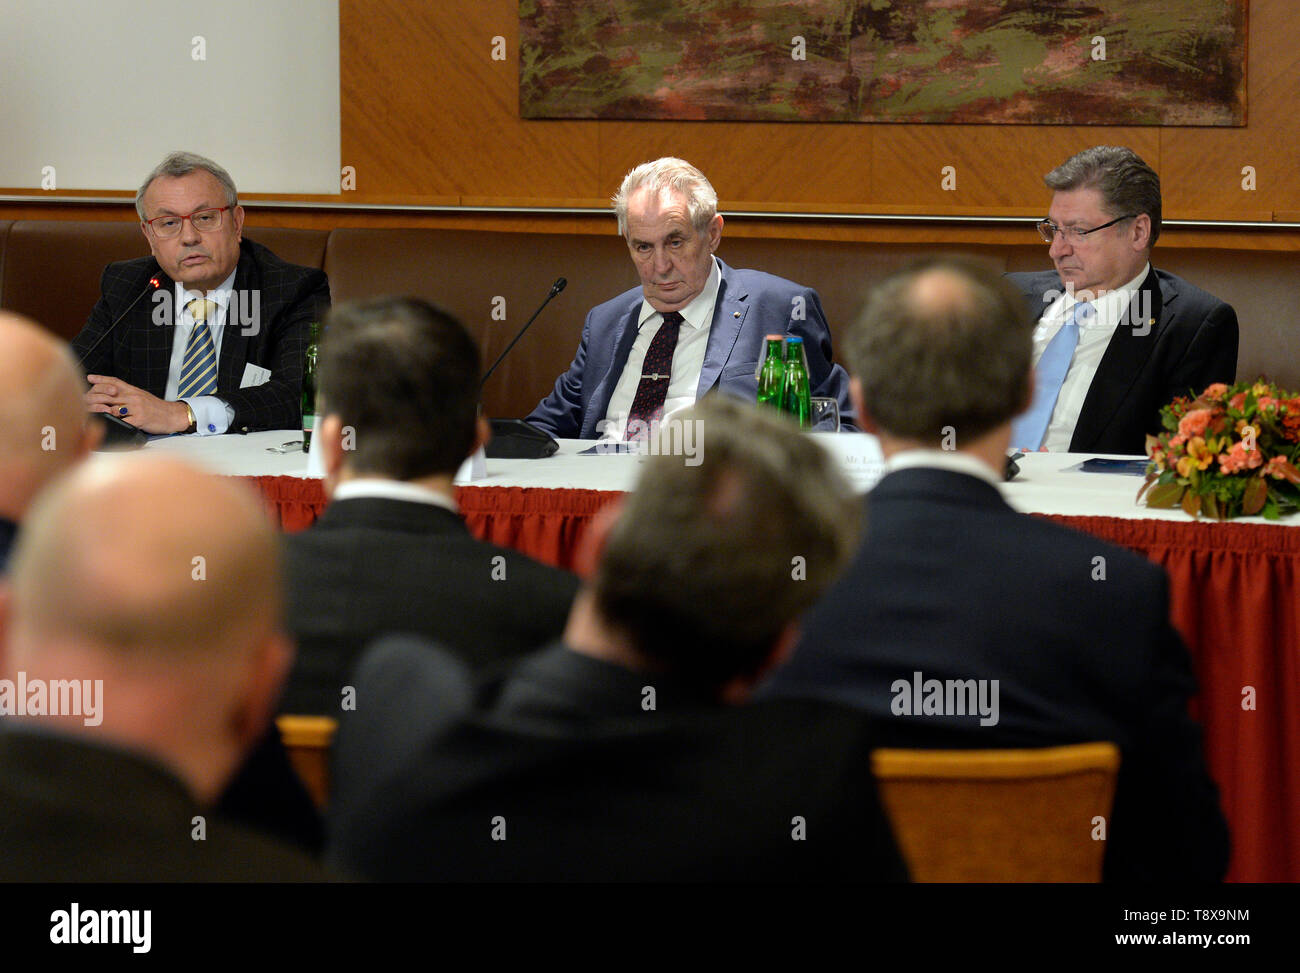 Budapest, Hungary. 14th May, 2019. L-R Head of Czech chamber of commerce Vladimir Dlouhy, Czech President Milos Zeman and Head of Hungarian chamber of commerce Laszlo Parragh debate with Czech and Hungarian entrepreneurs in Budapest, Hungary, on May 14, 2019. Czech President launched his three-day visit to Hungary in this day. Credit: Katerina Sulova/CTK Photo/Alamy Live News Stock Photo